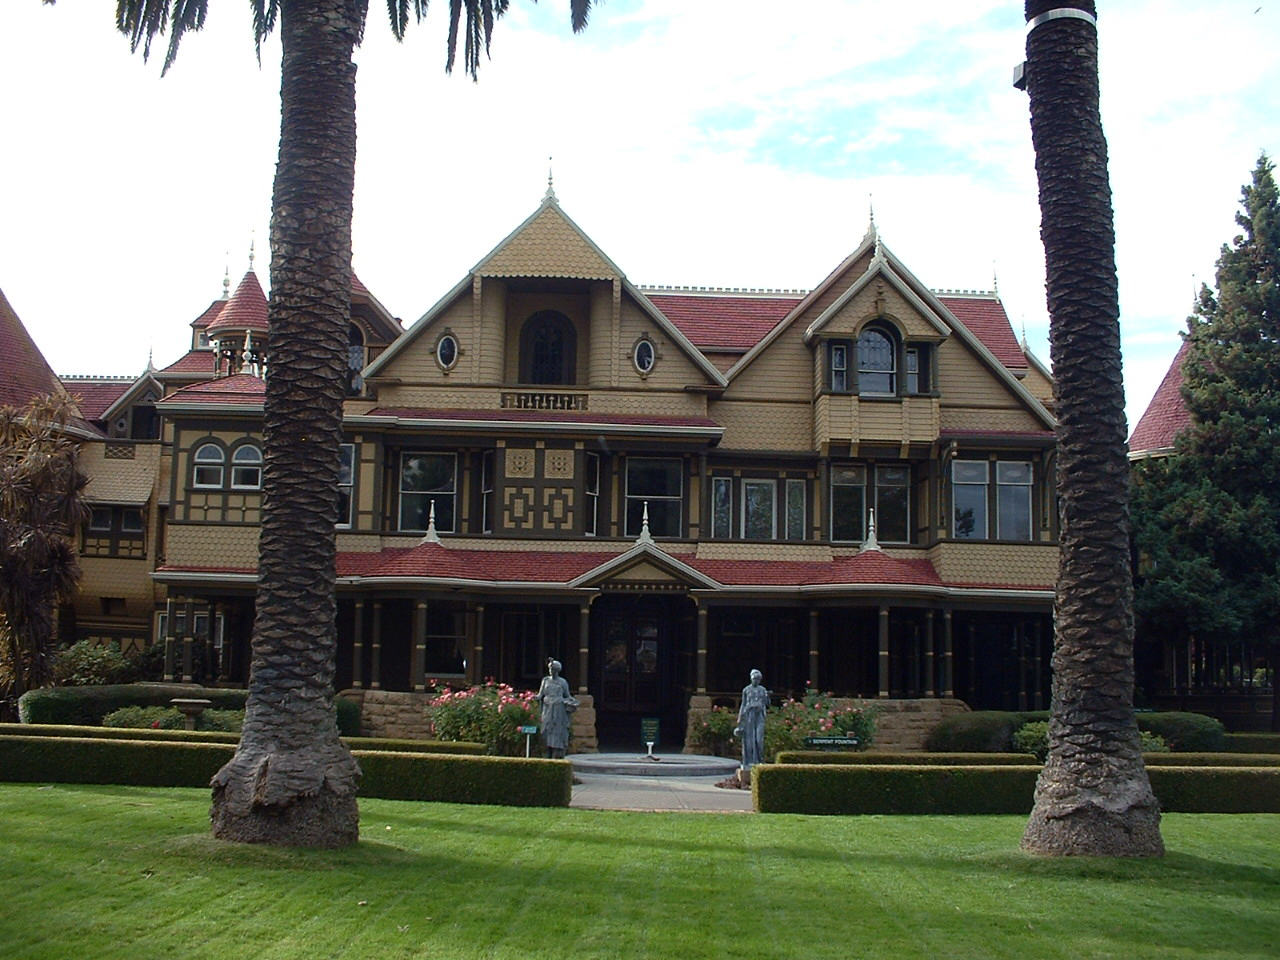 The Best and Worst Rooms in the Winchester Mystery House to Have Sex in